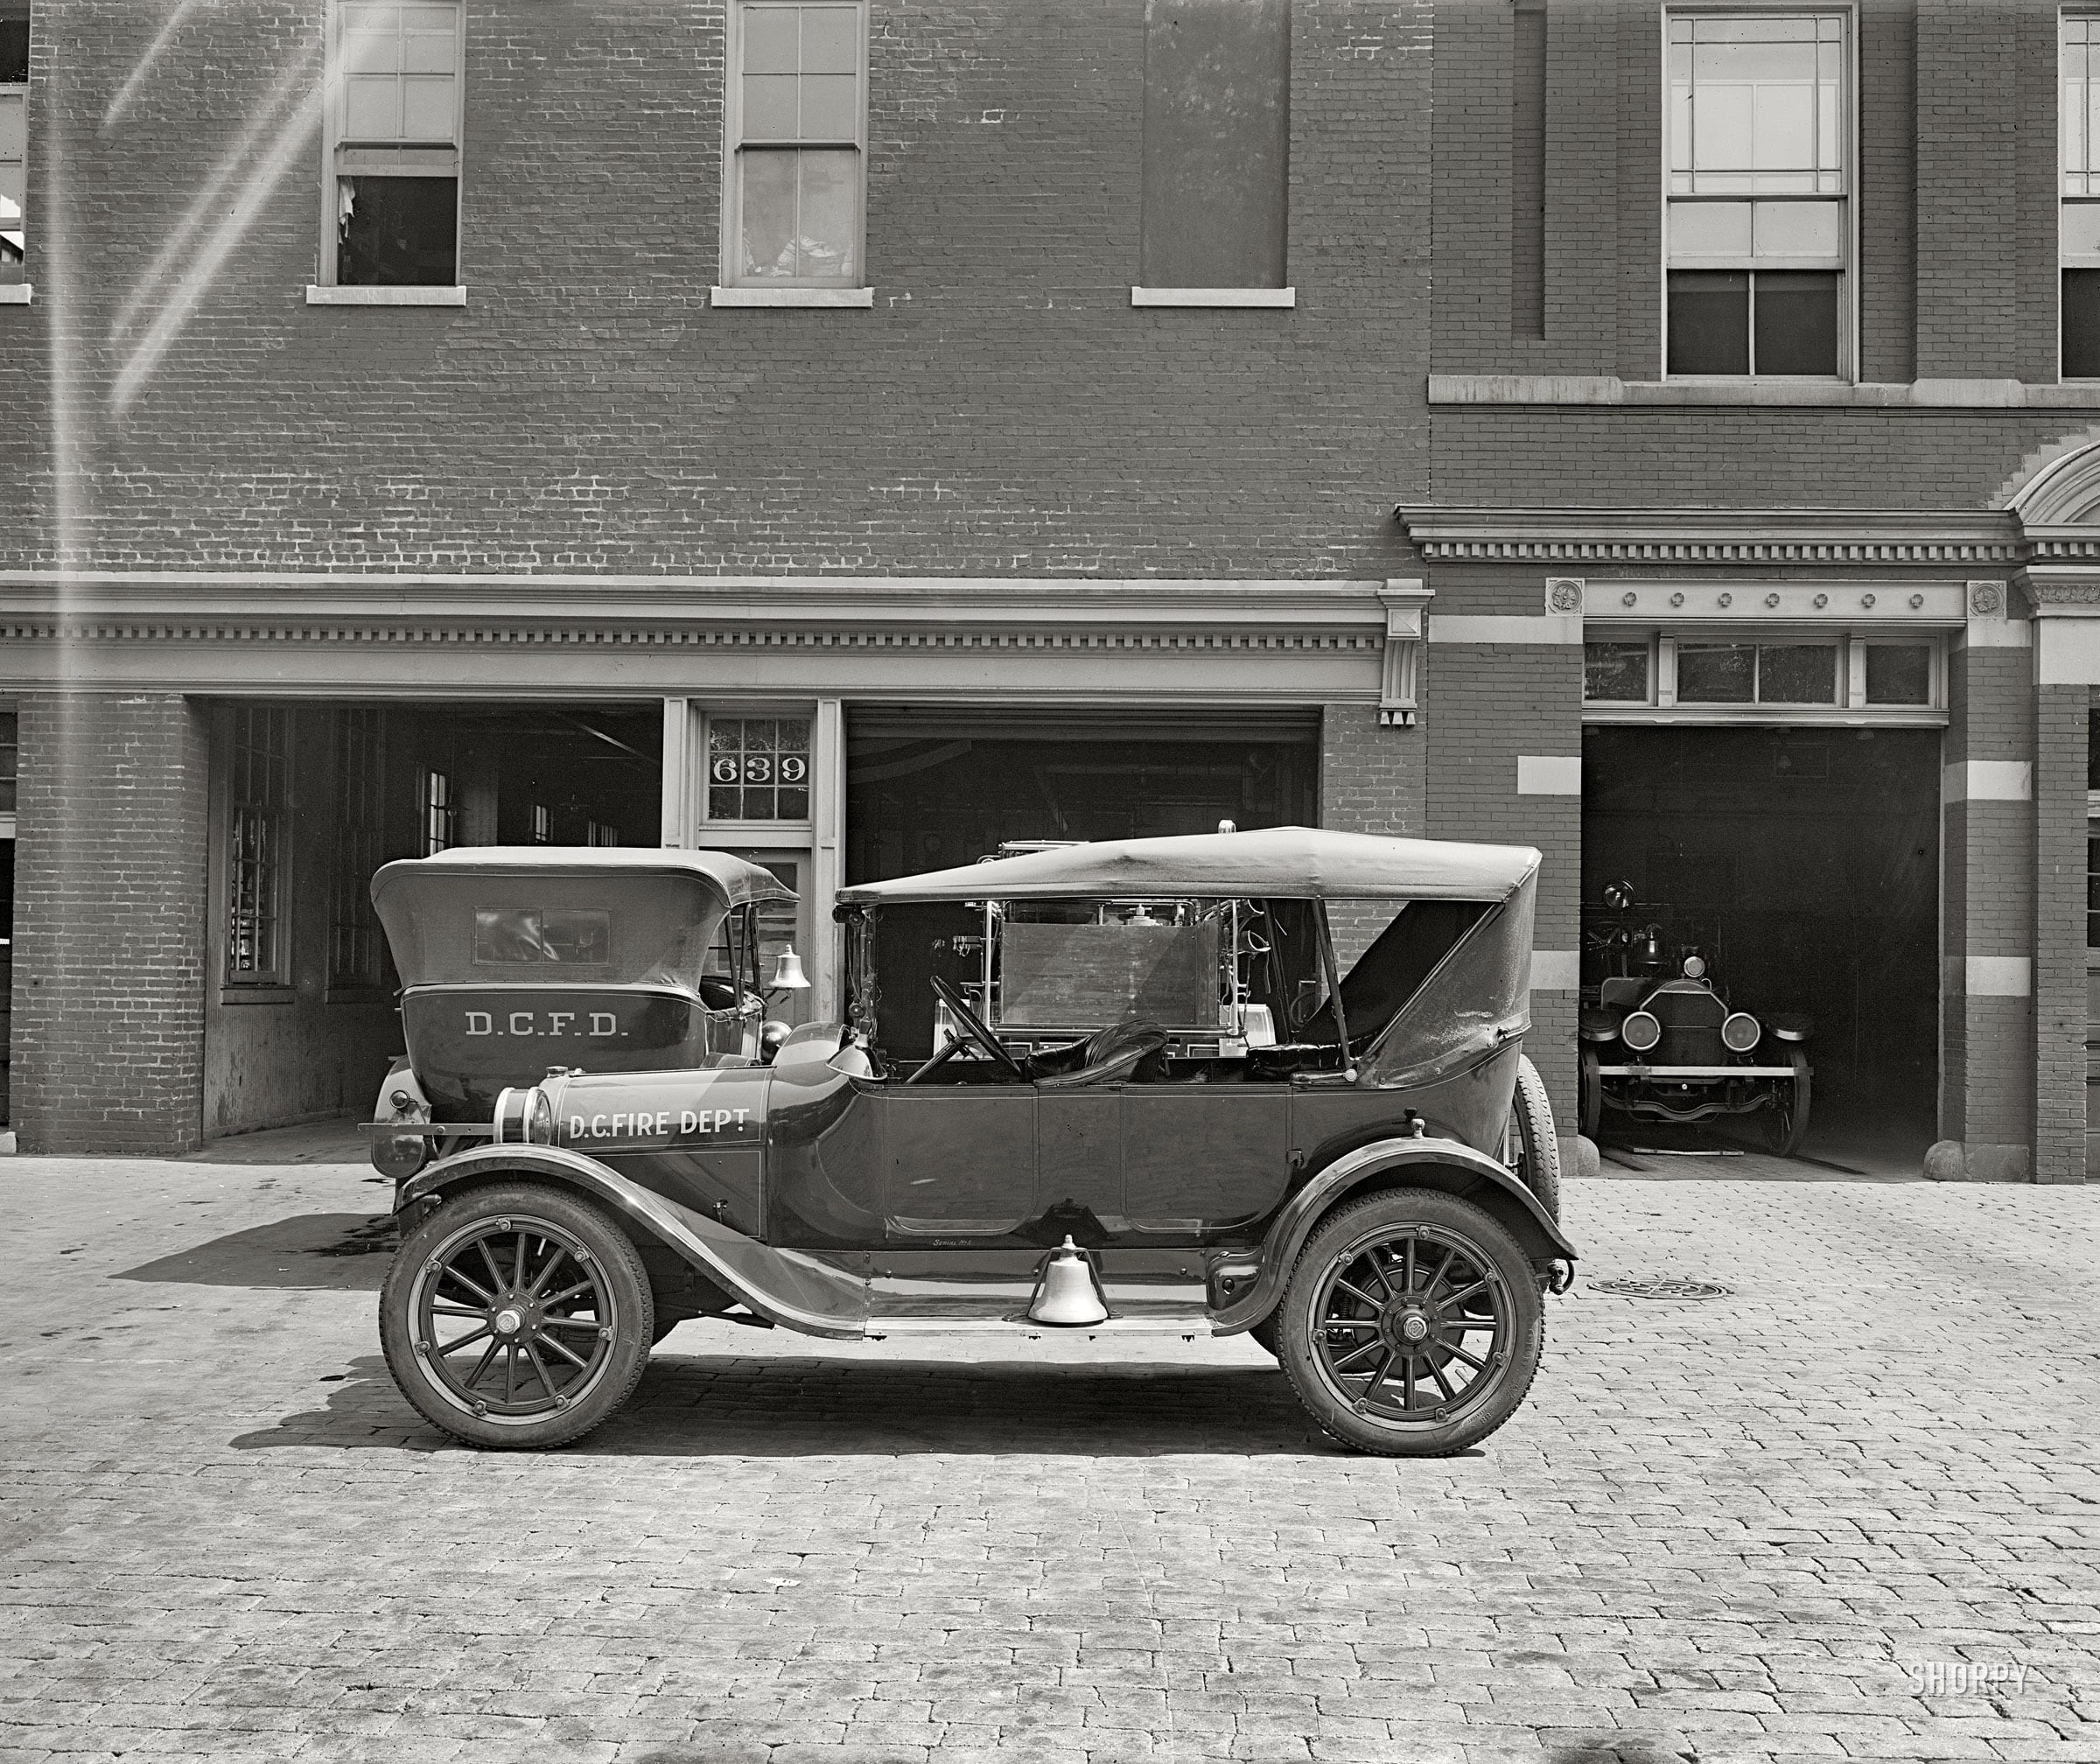 "D.C. Fire Dept. car for Semmes Motor Co."" National Photo Company Collection glass negative (Shorpy)"